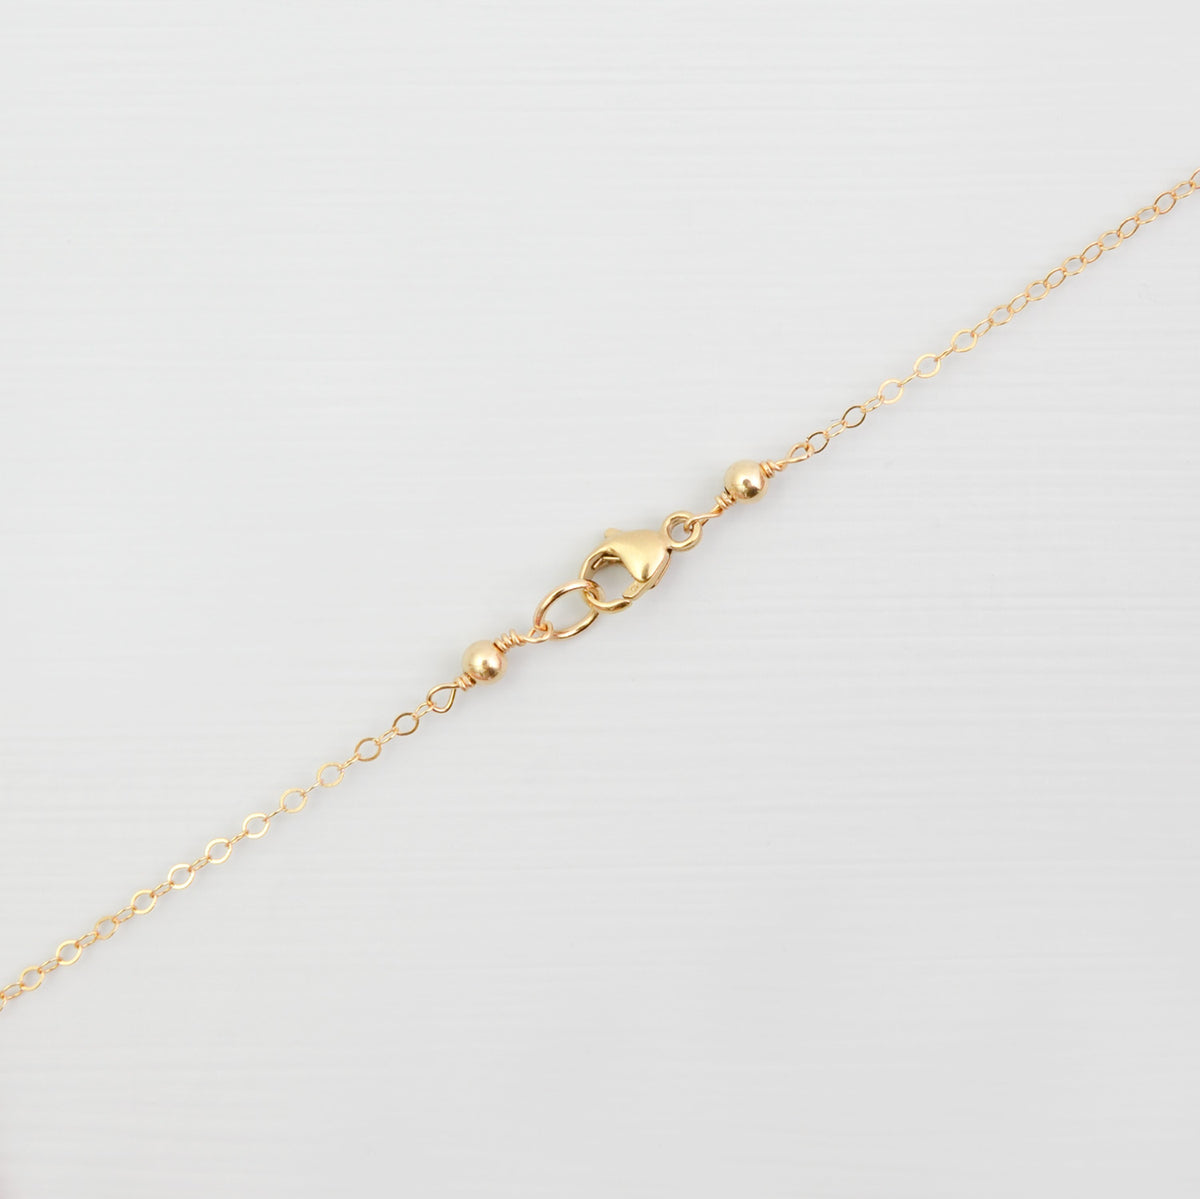 Freshwater pearl and swallow charm necklace 'Alma'